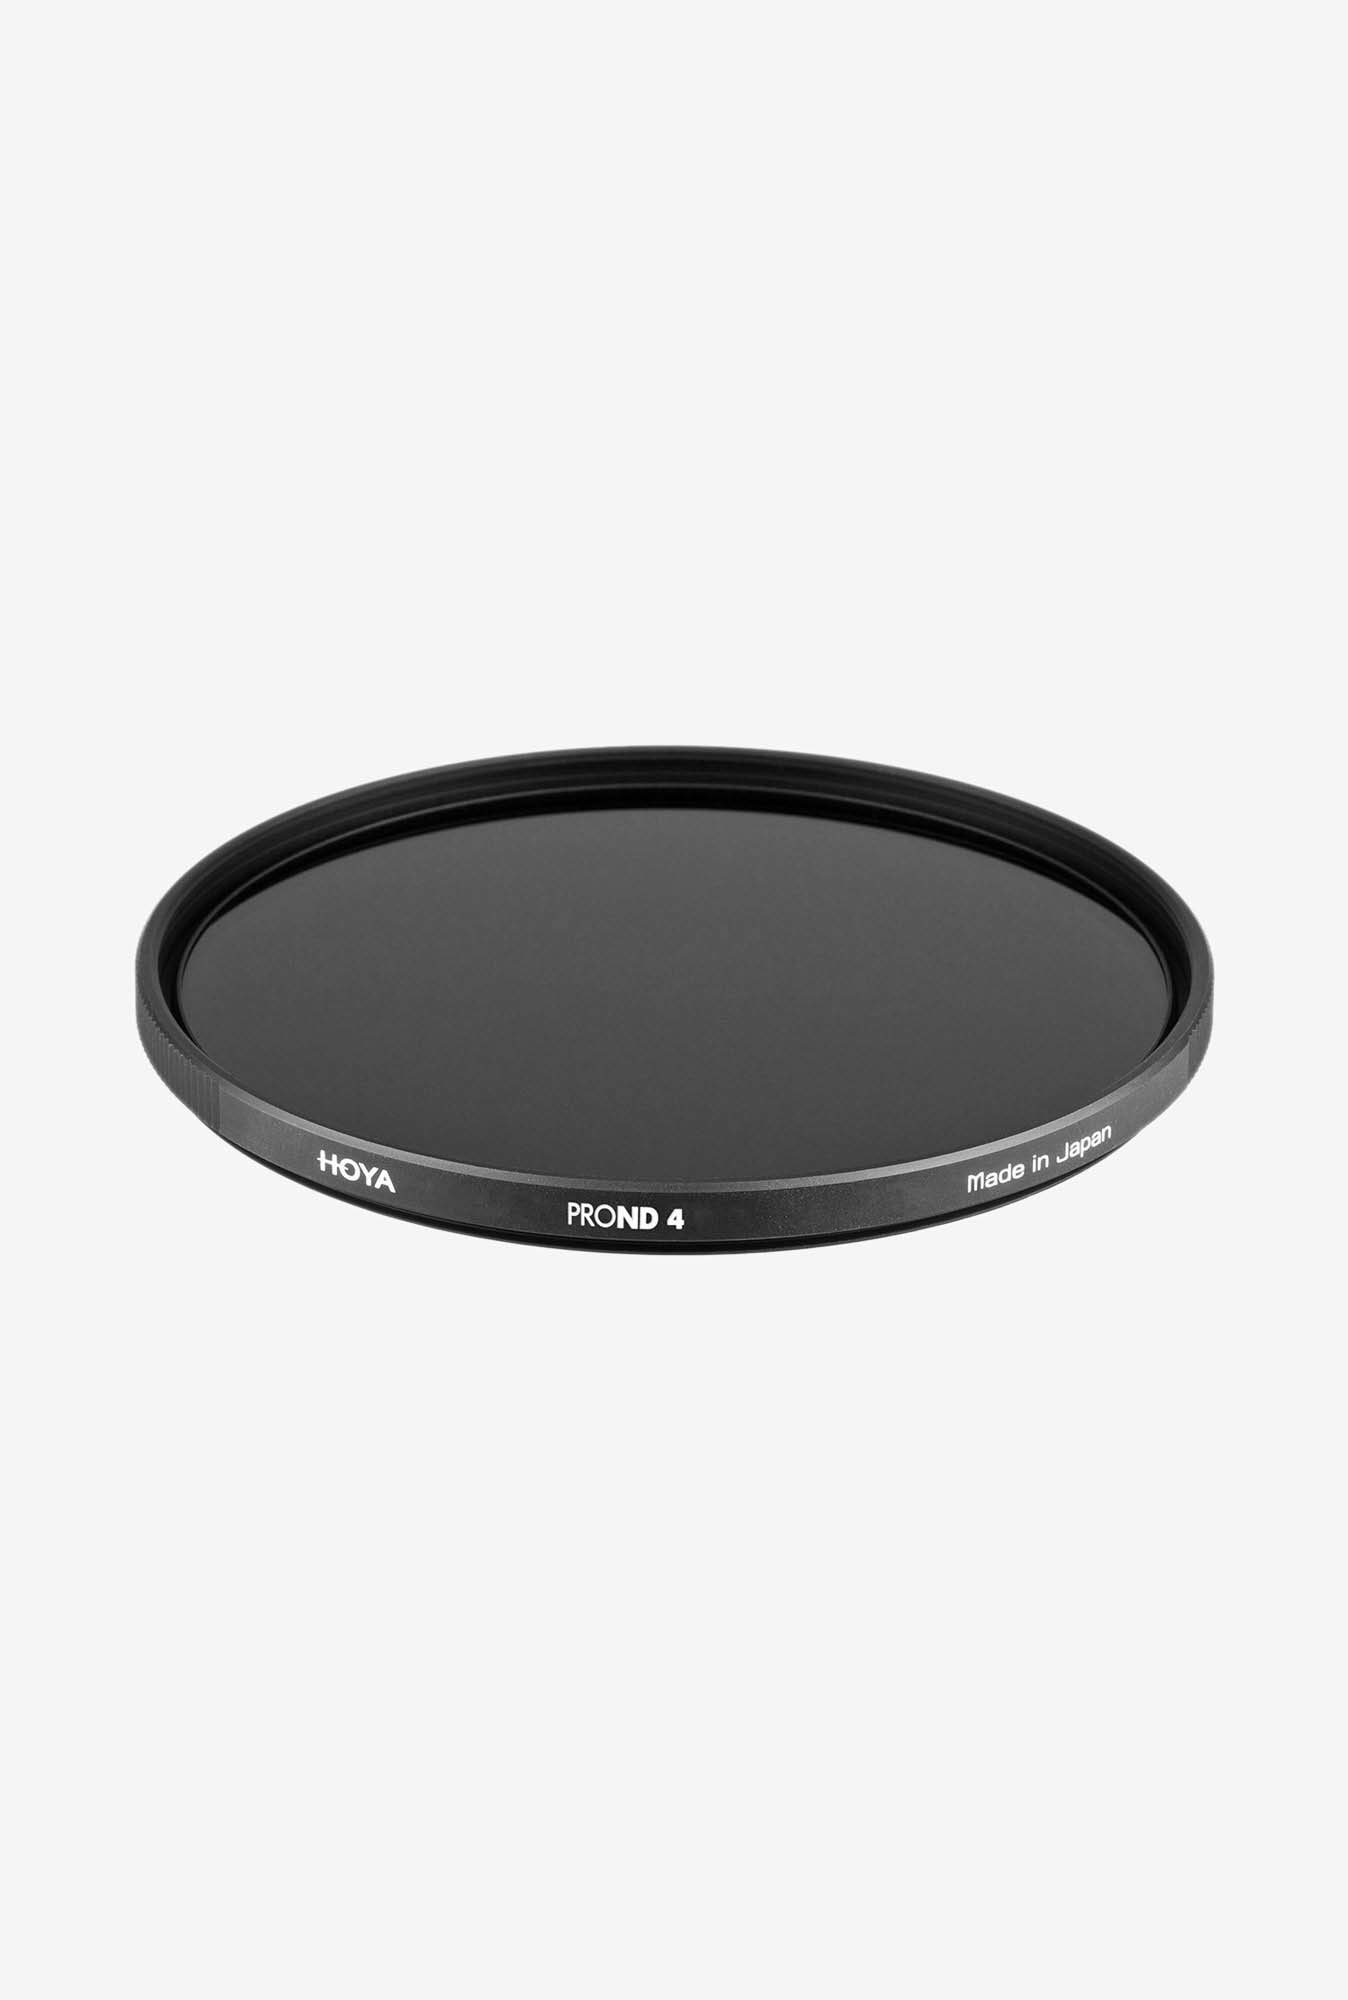 Hoya 58mm 4X Neutral Density Filter (Black)